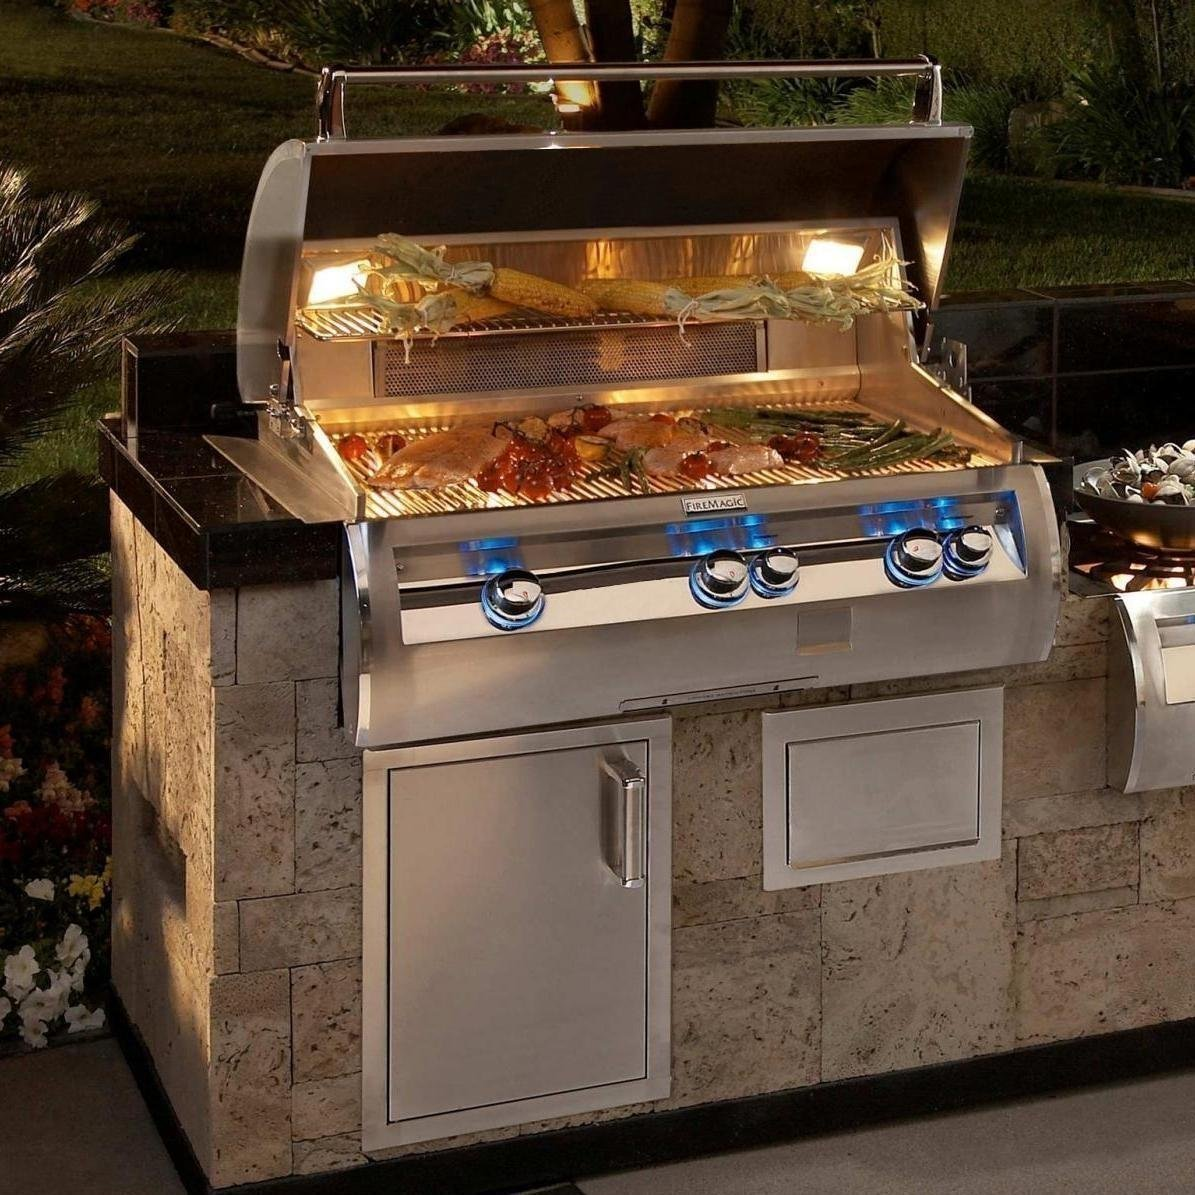 Best Natural Gas Grill For The Money